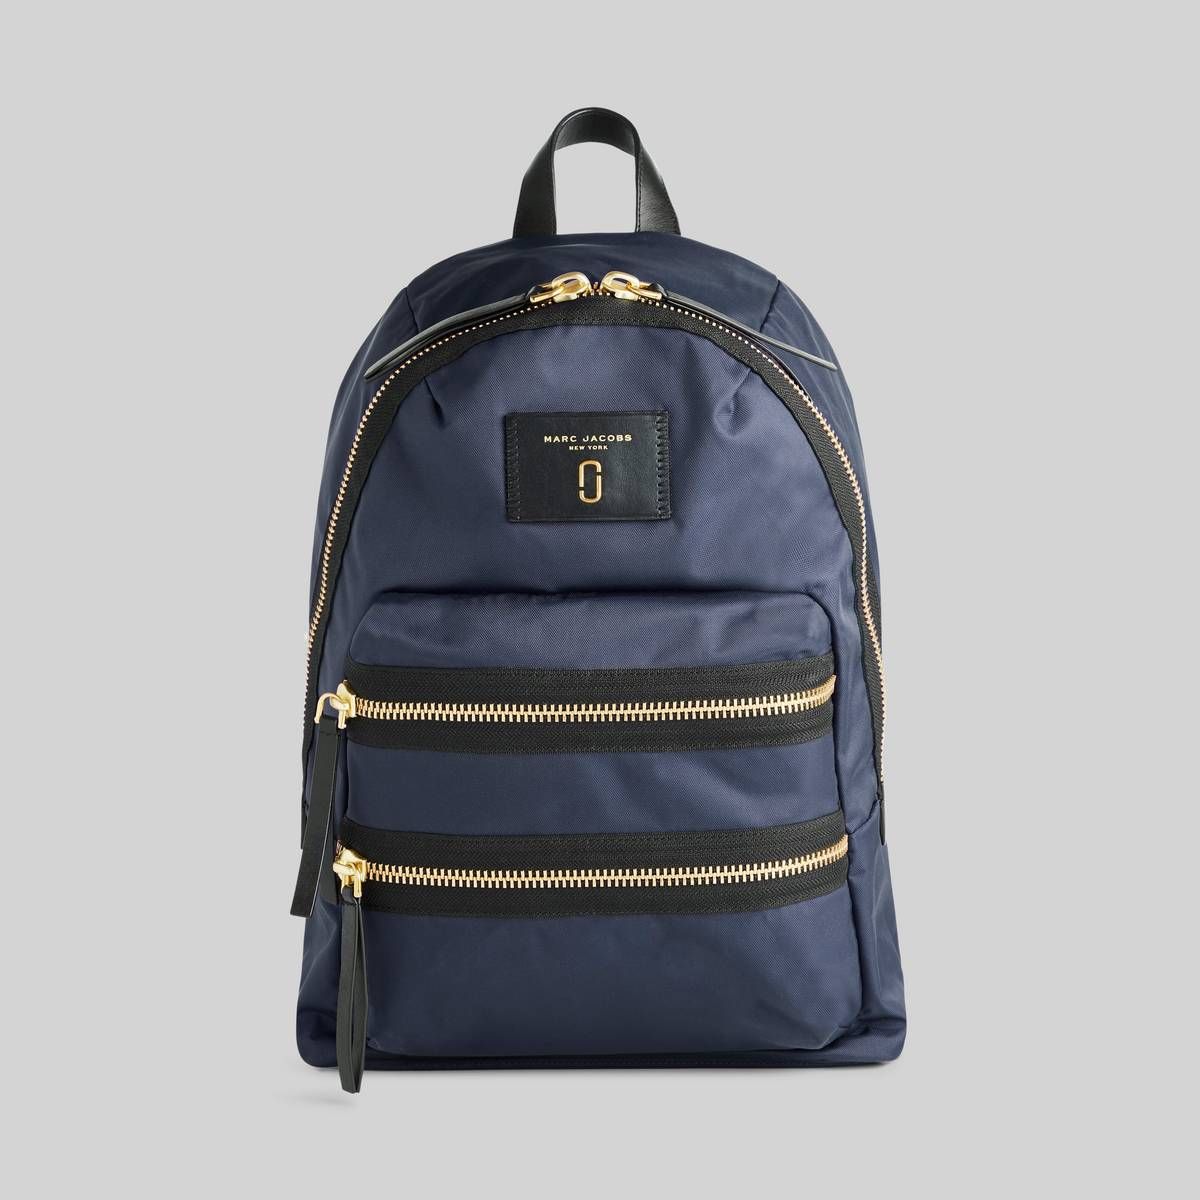 The backpack of all trades returning this season in a lightweight, high-performance nylon. Our signature dual exterior zip adds functionality while smooth padded straps allow for all day wear no matter where the week takes you. | MARC JACOBS Women\\'s Nylon Biker Backpack in Midnight Blue